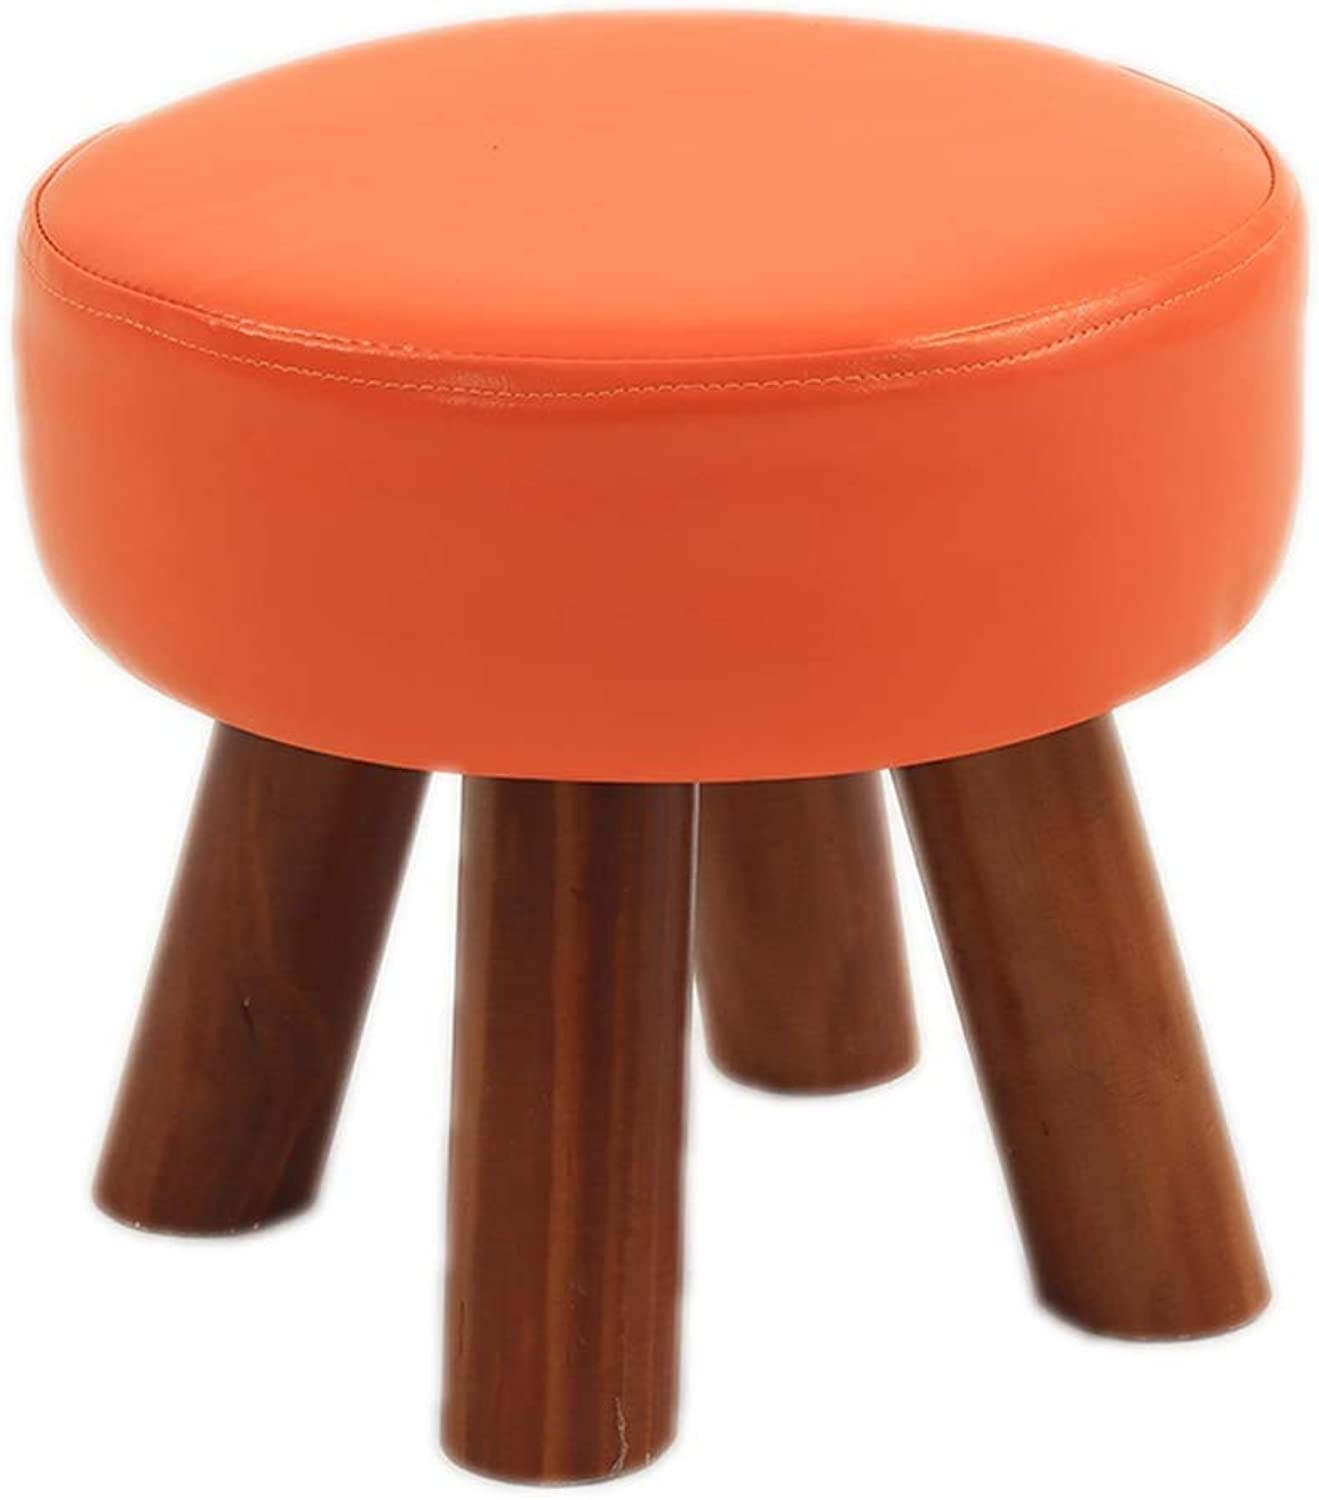 Footstool Change shoes Bench Round Wooden Legs Foot Stools Comfortable Seat Scrubbable Upholstered Seating Chair Home Multi-Function LEBAO (color   orange)